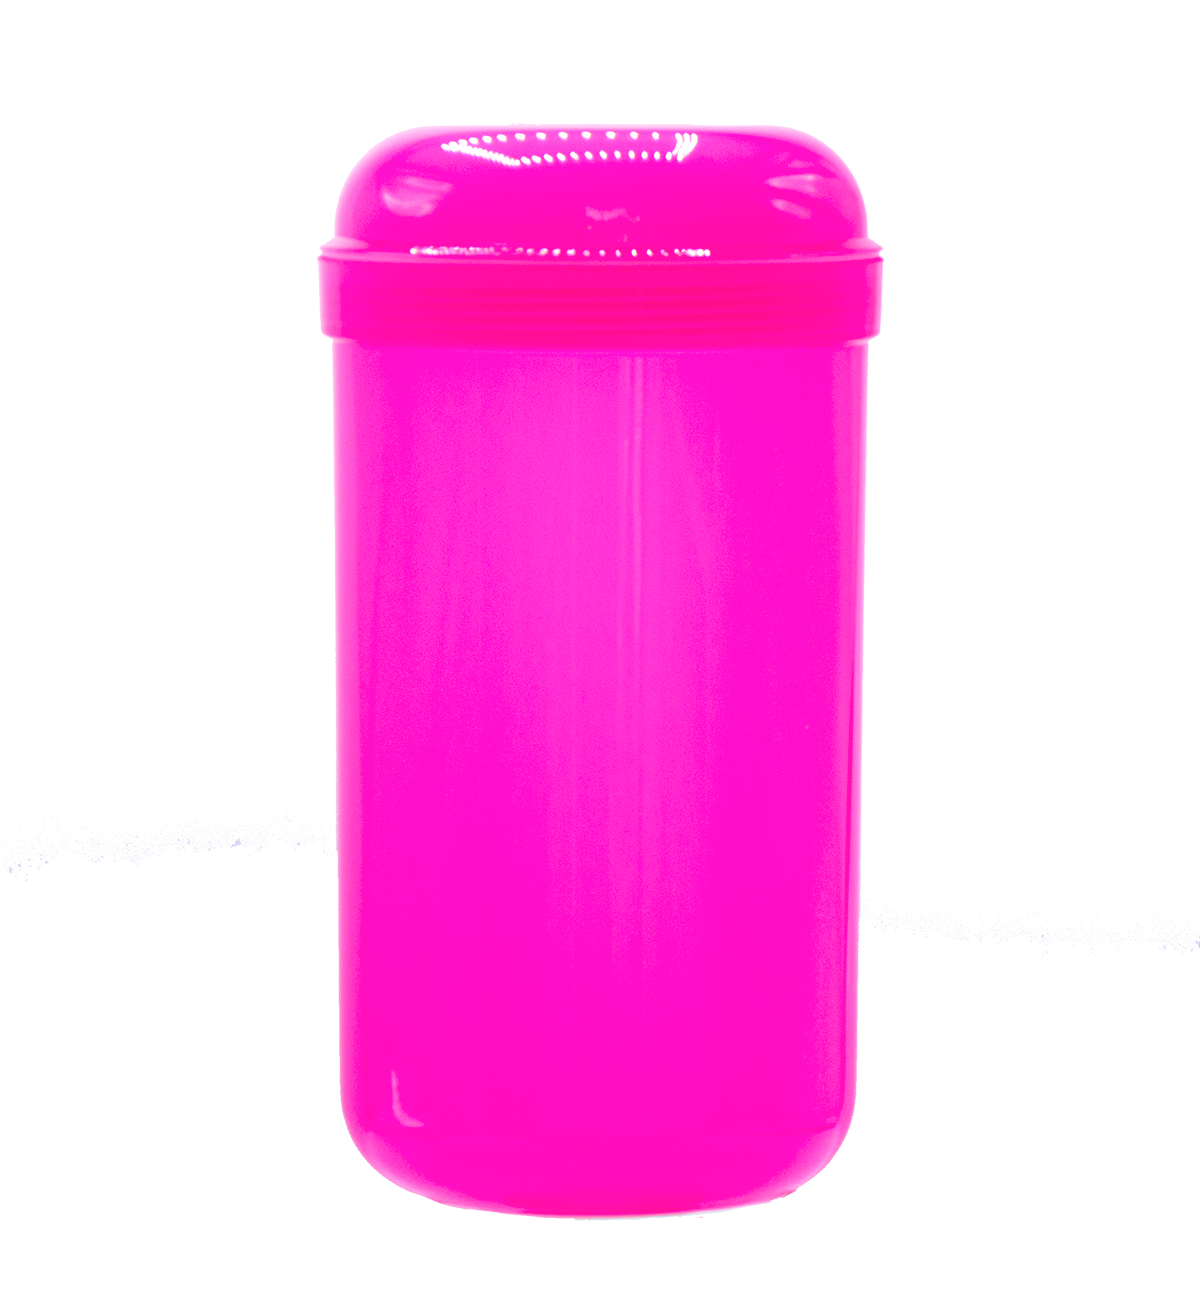 SubSafe Lid Accessory - Use with large SubSafe piece